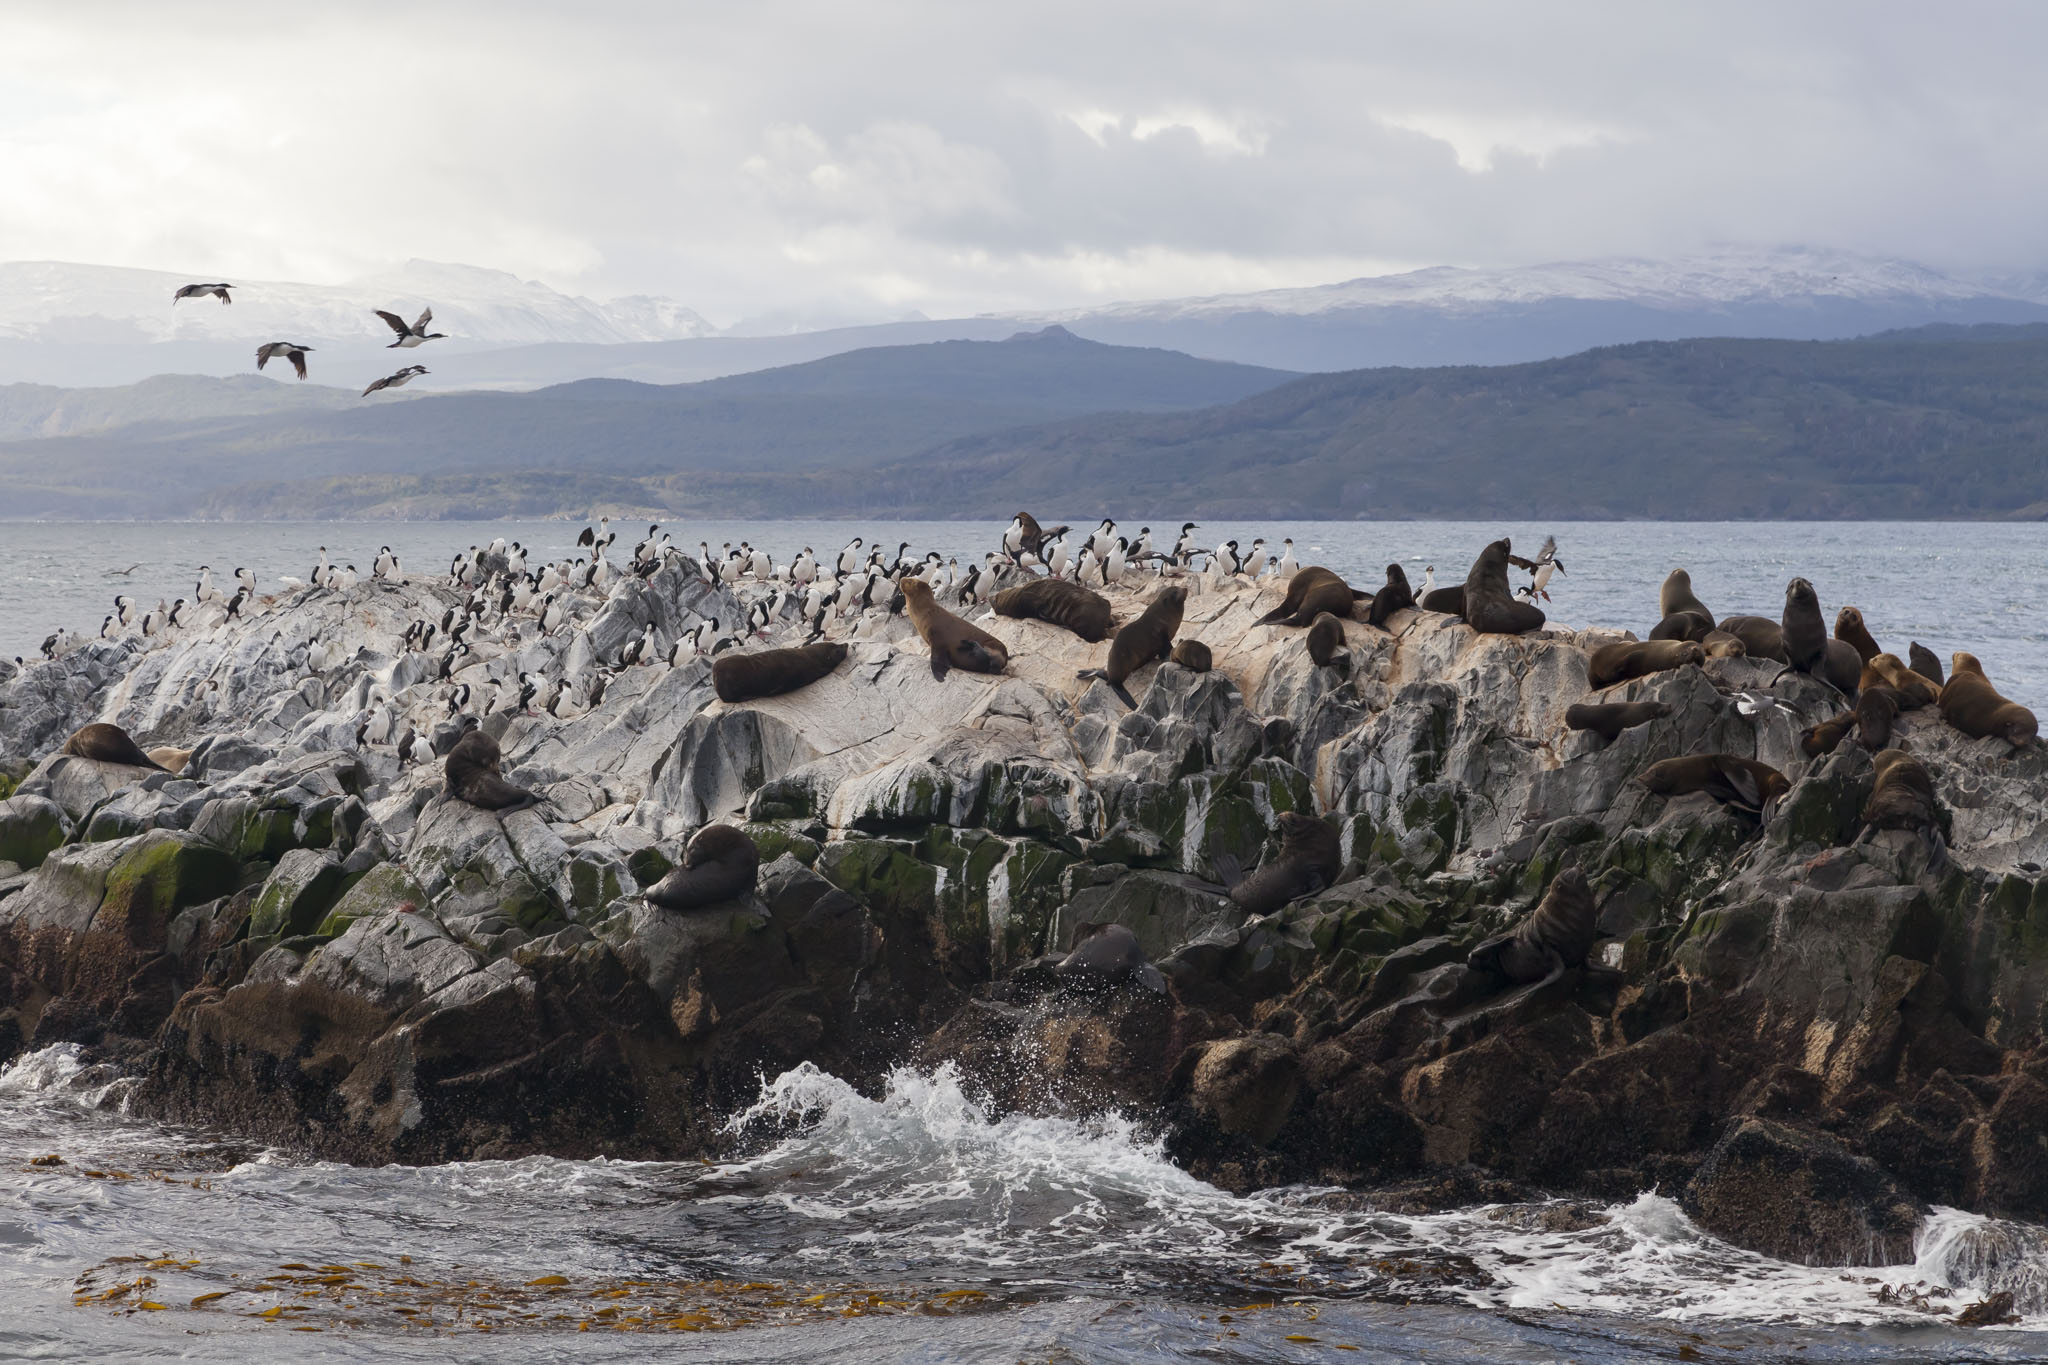 Beagle Channel, Sea Lions, Cormorants